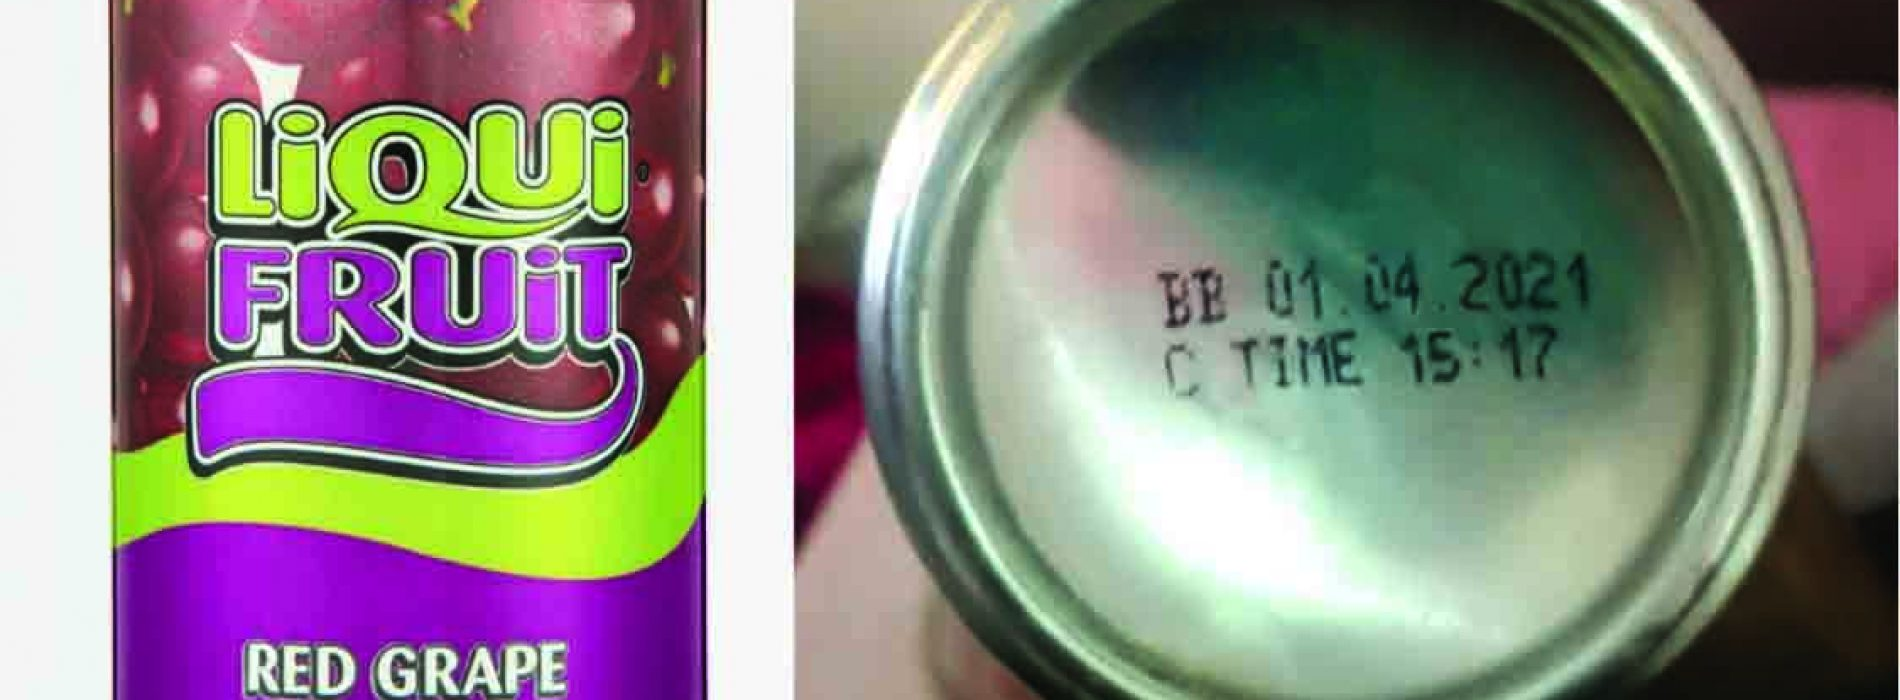 Liqui Fruit red grape juice withdrawn